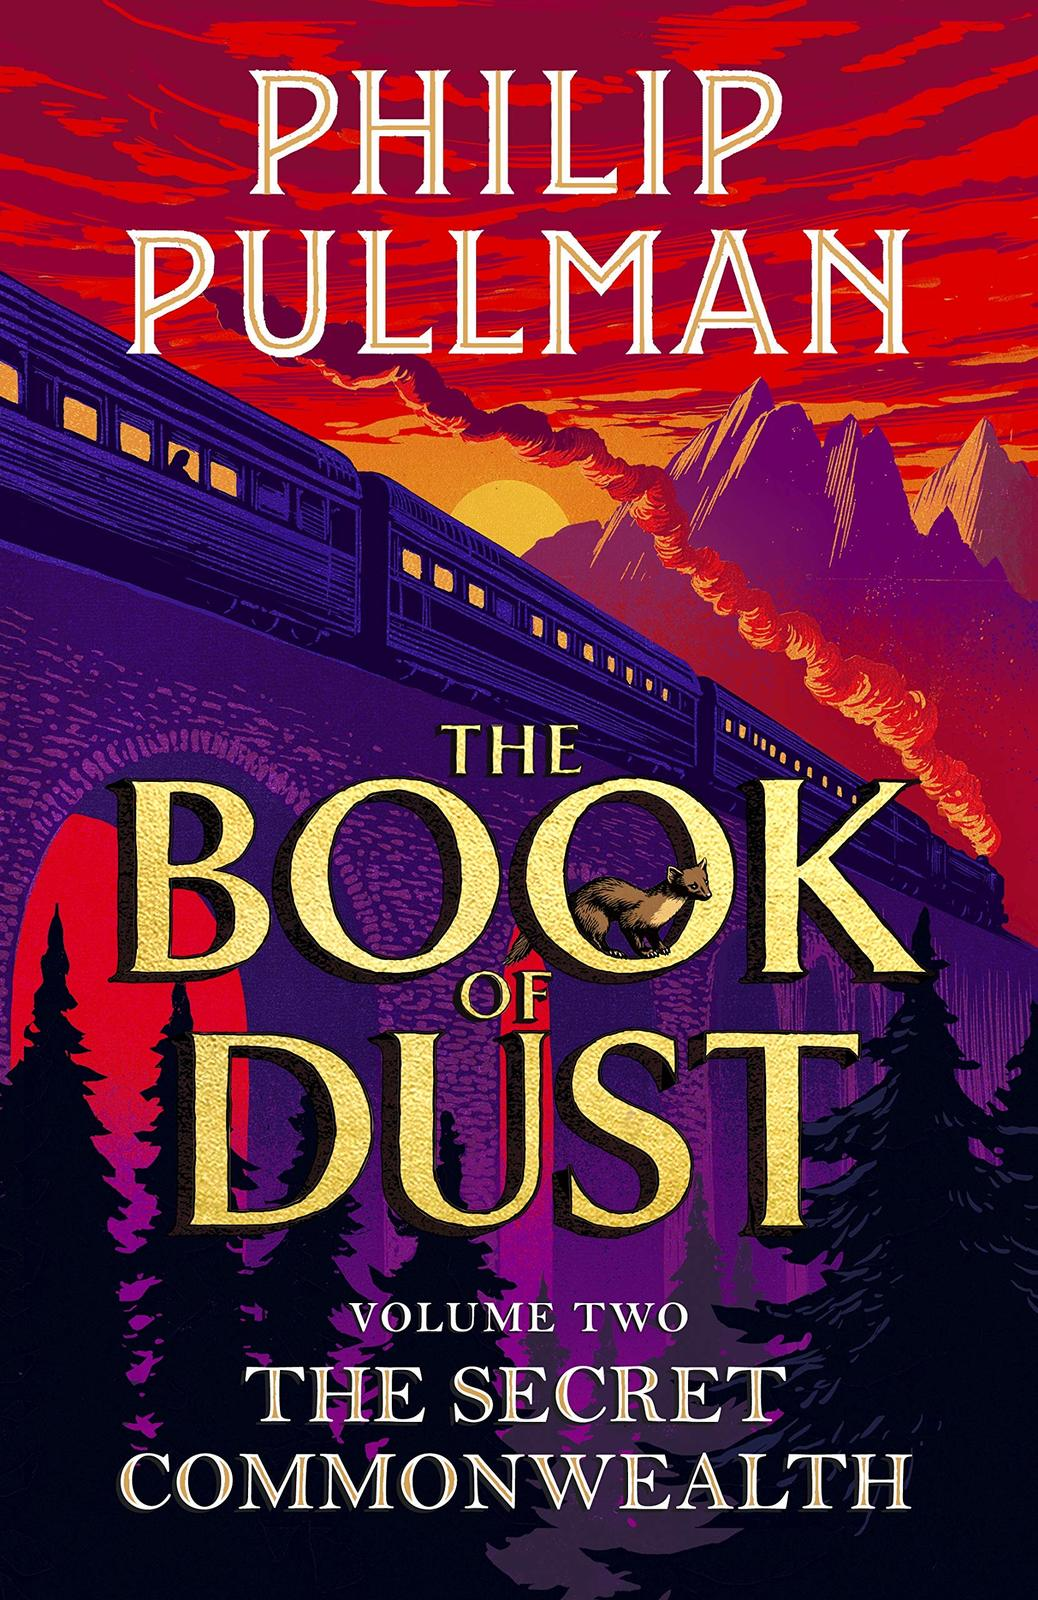 The Secret Commonwealth: The Book of Dust Volume Two by Philip Pullman image